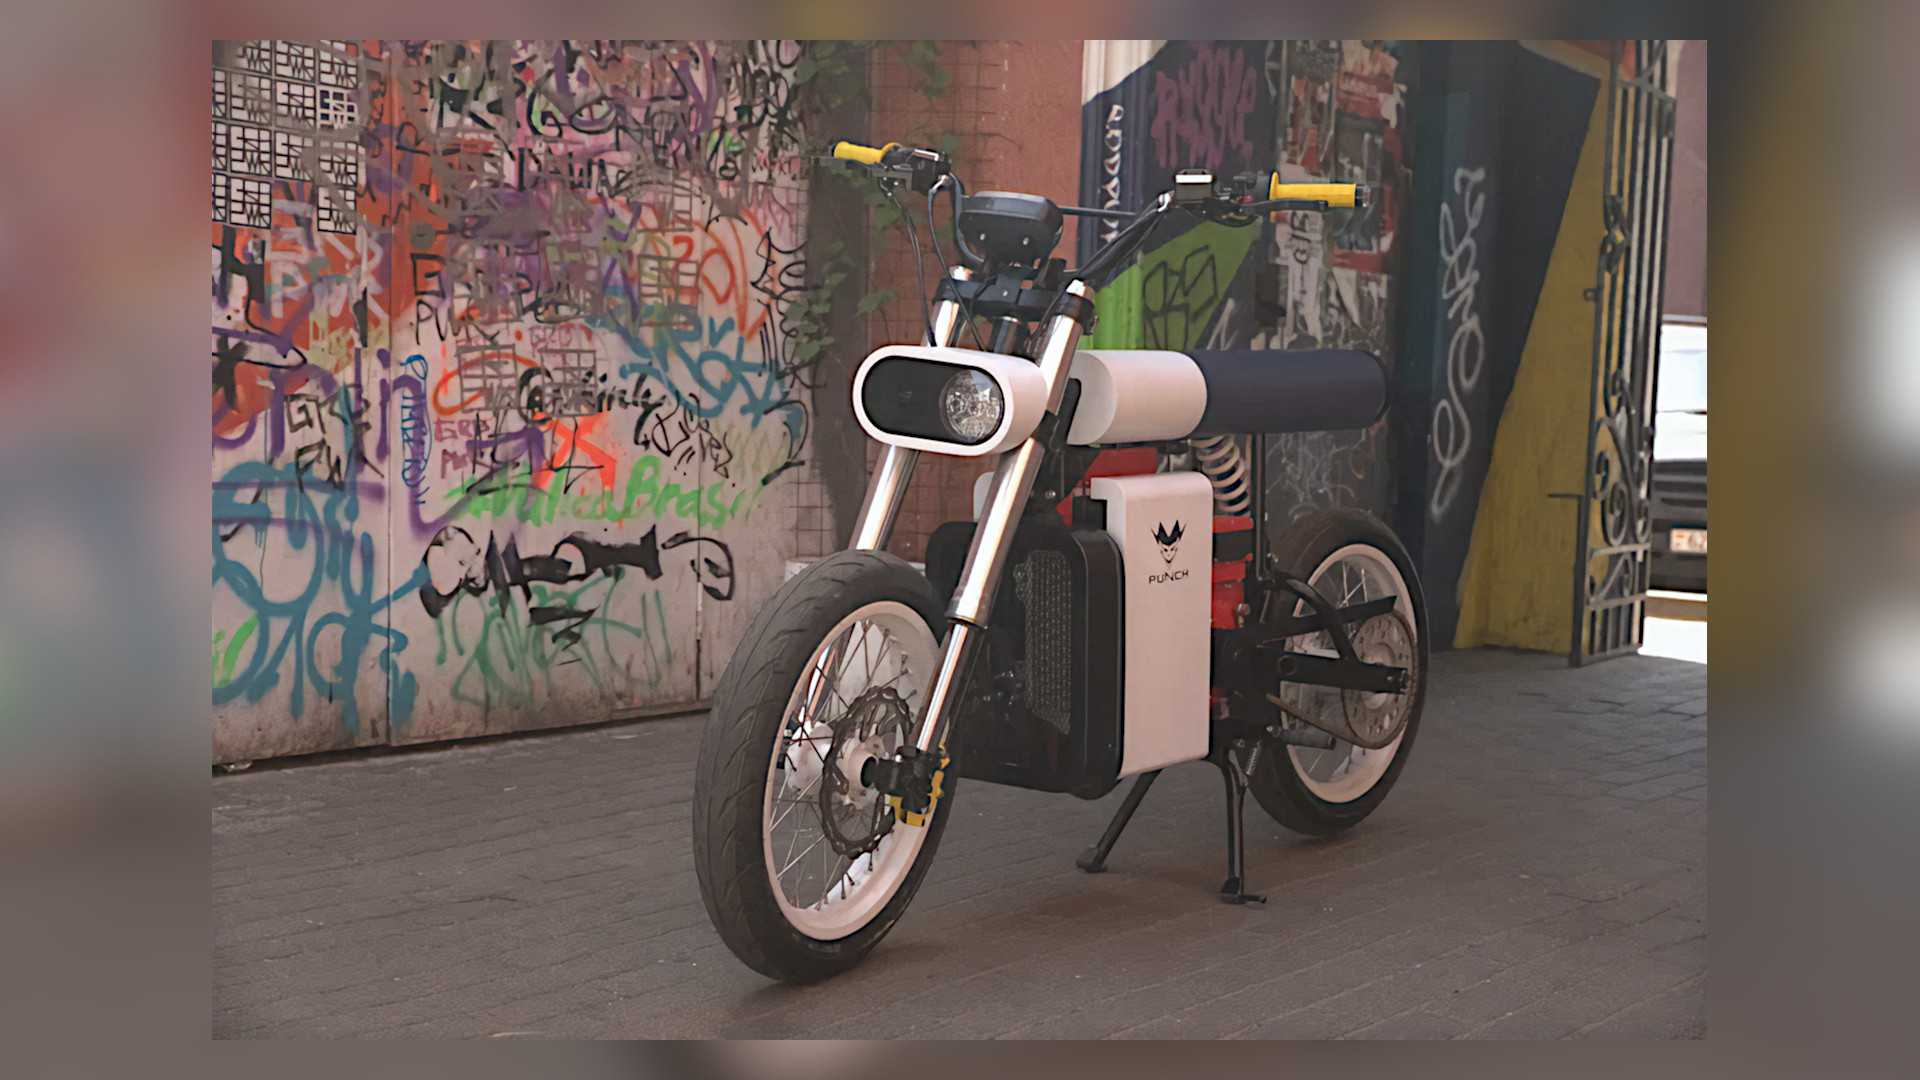 Punch Electric Motorcycle Is A Striking Design From Belarus